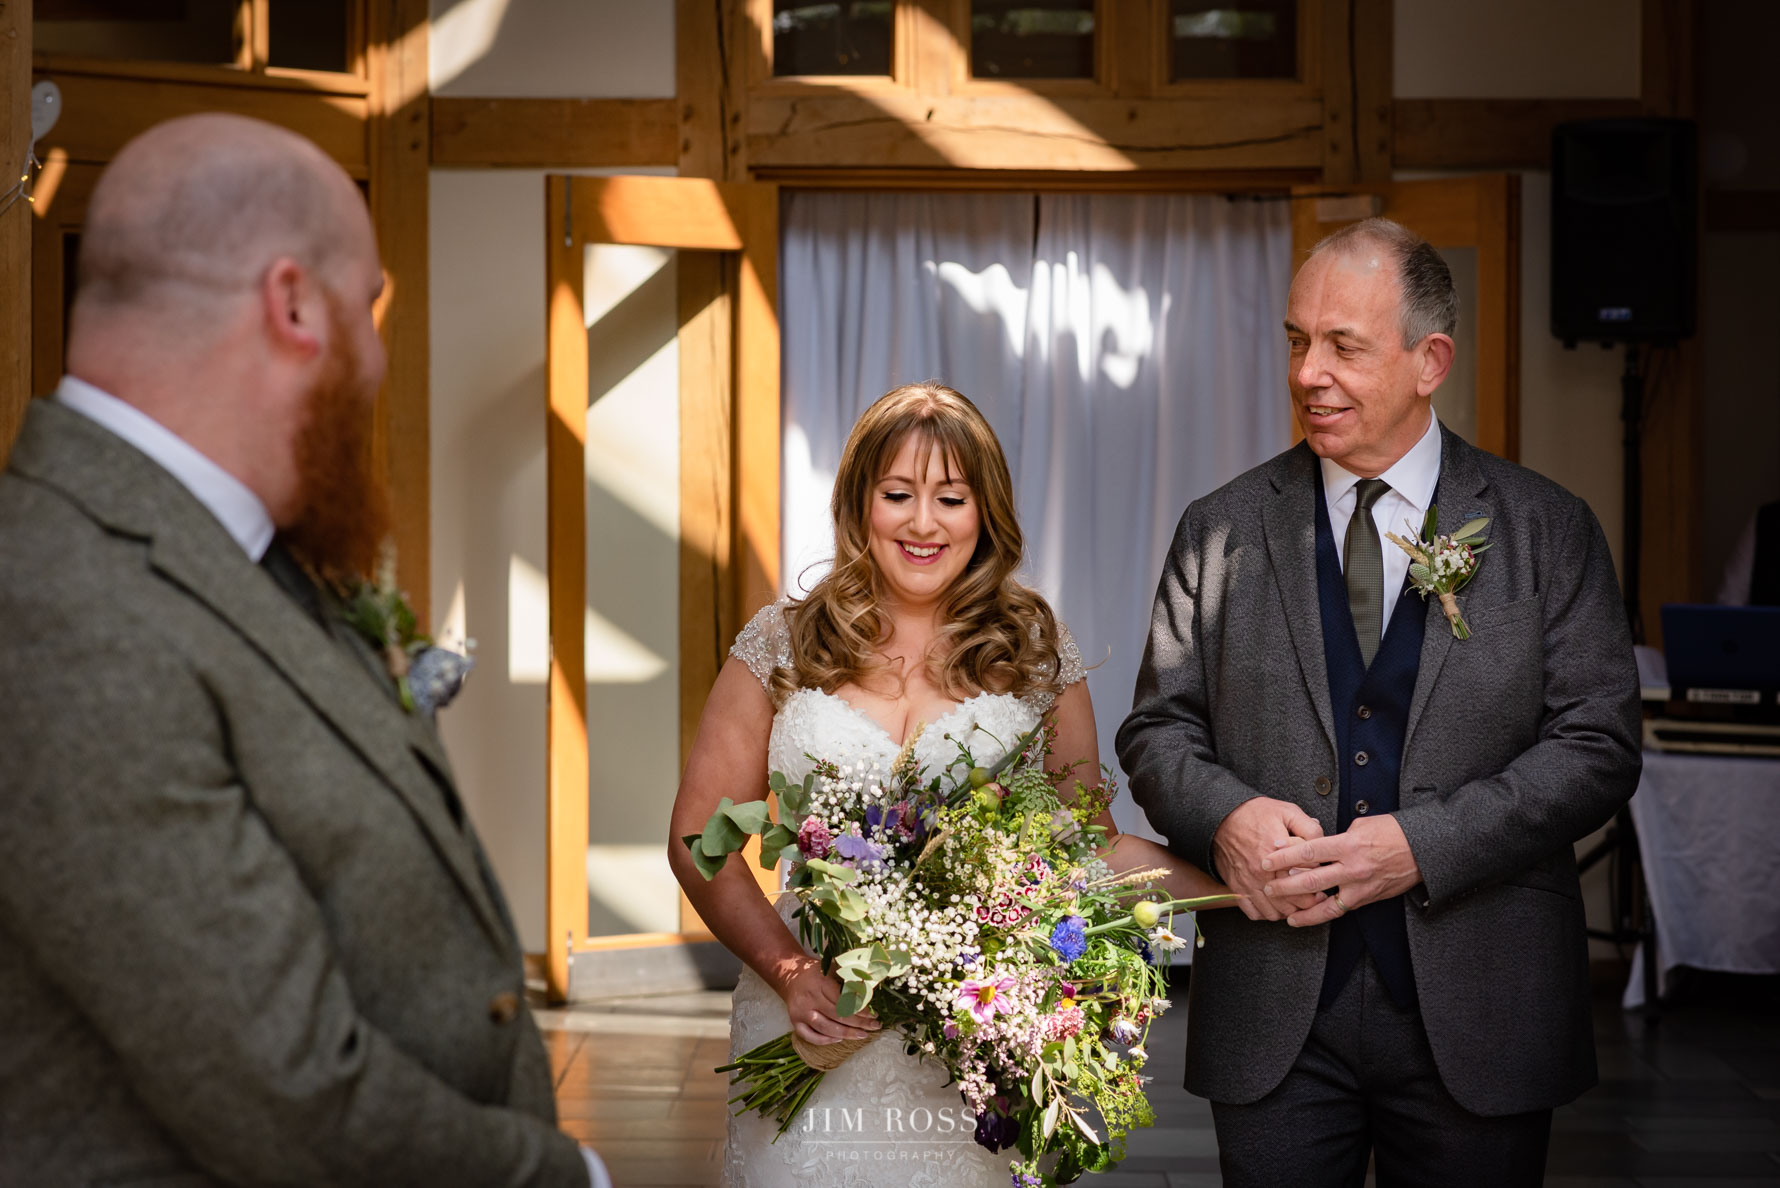 Dad and bride approach the groom